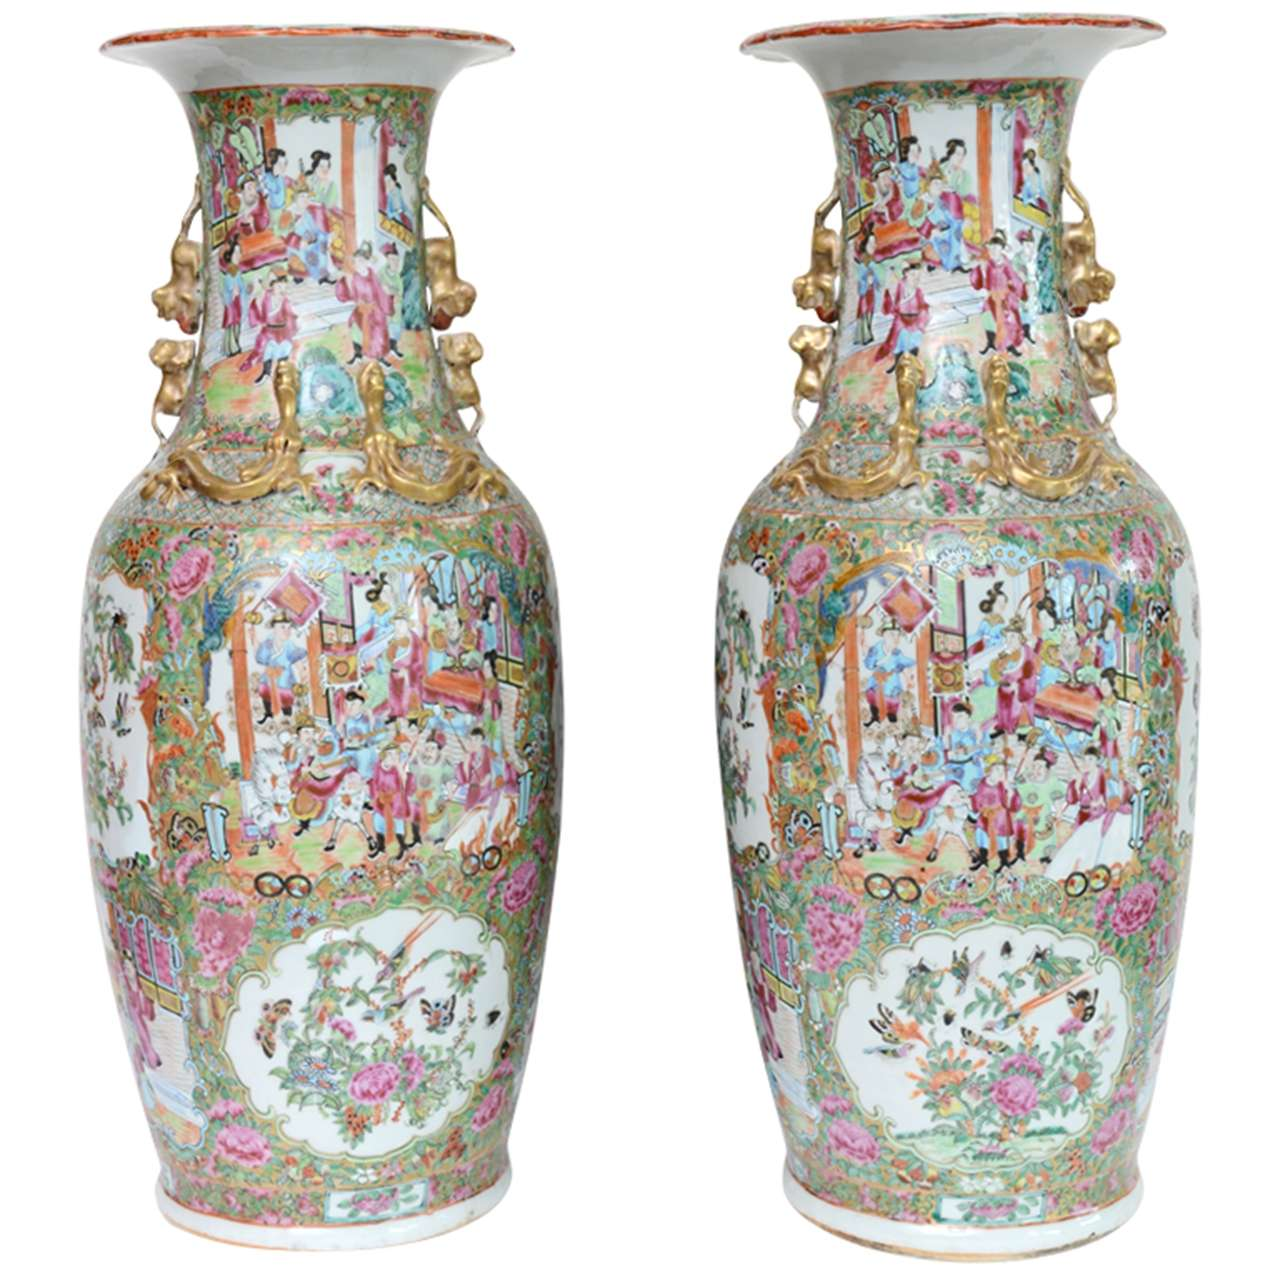 Pair chinese porcelain famille rose vases 24h 19th century at pair chinese porcelain famille rose vases 24h 19th century at 1stdibs reviewsmspy